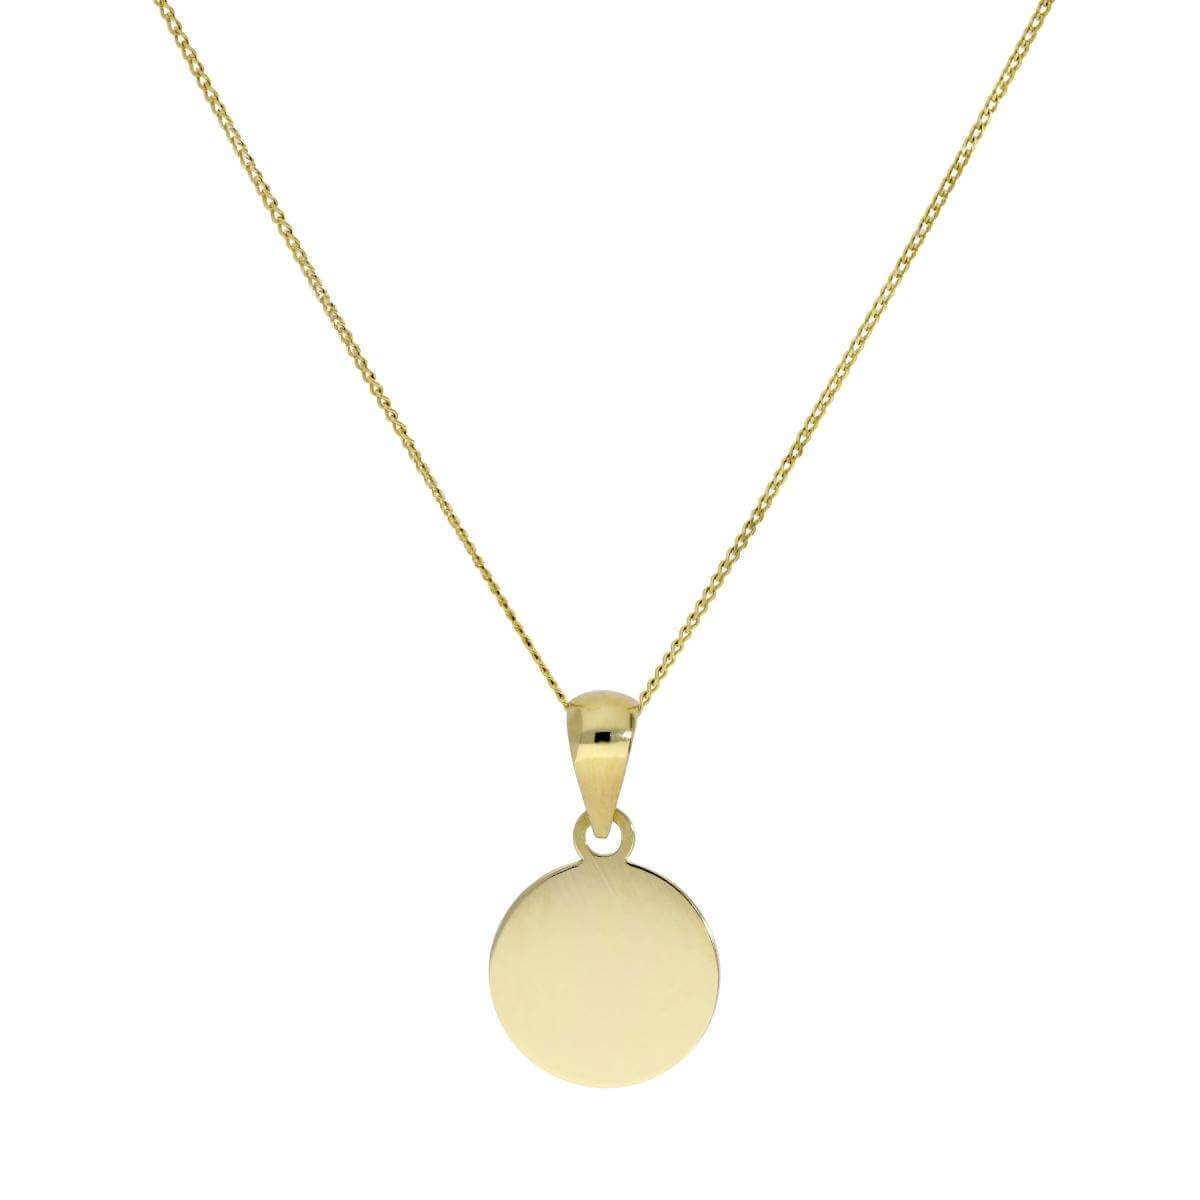 9ct Gold Engravable Round Pendant Necklace 16 - 20 Inches Chain